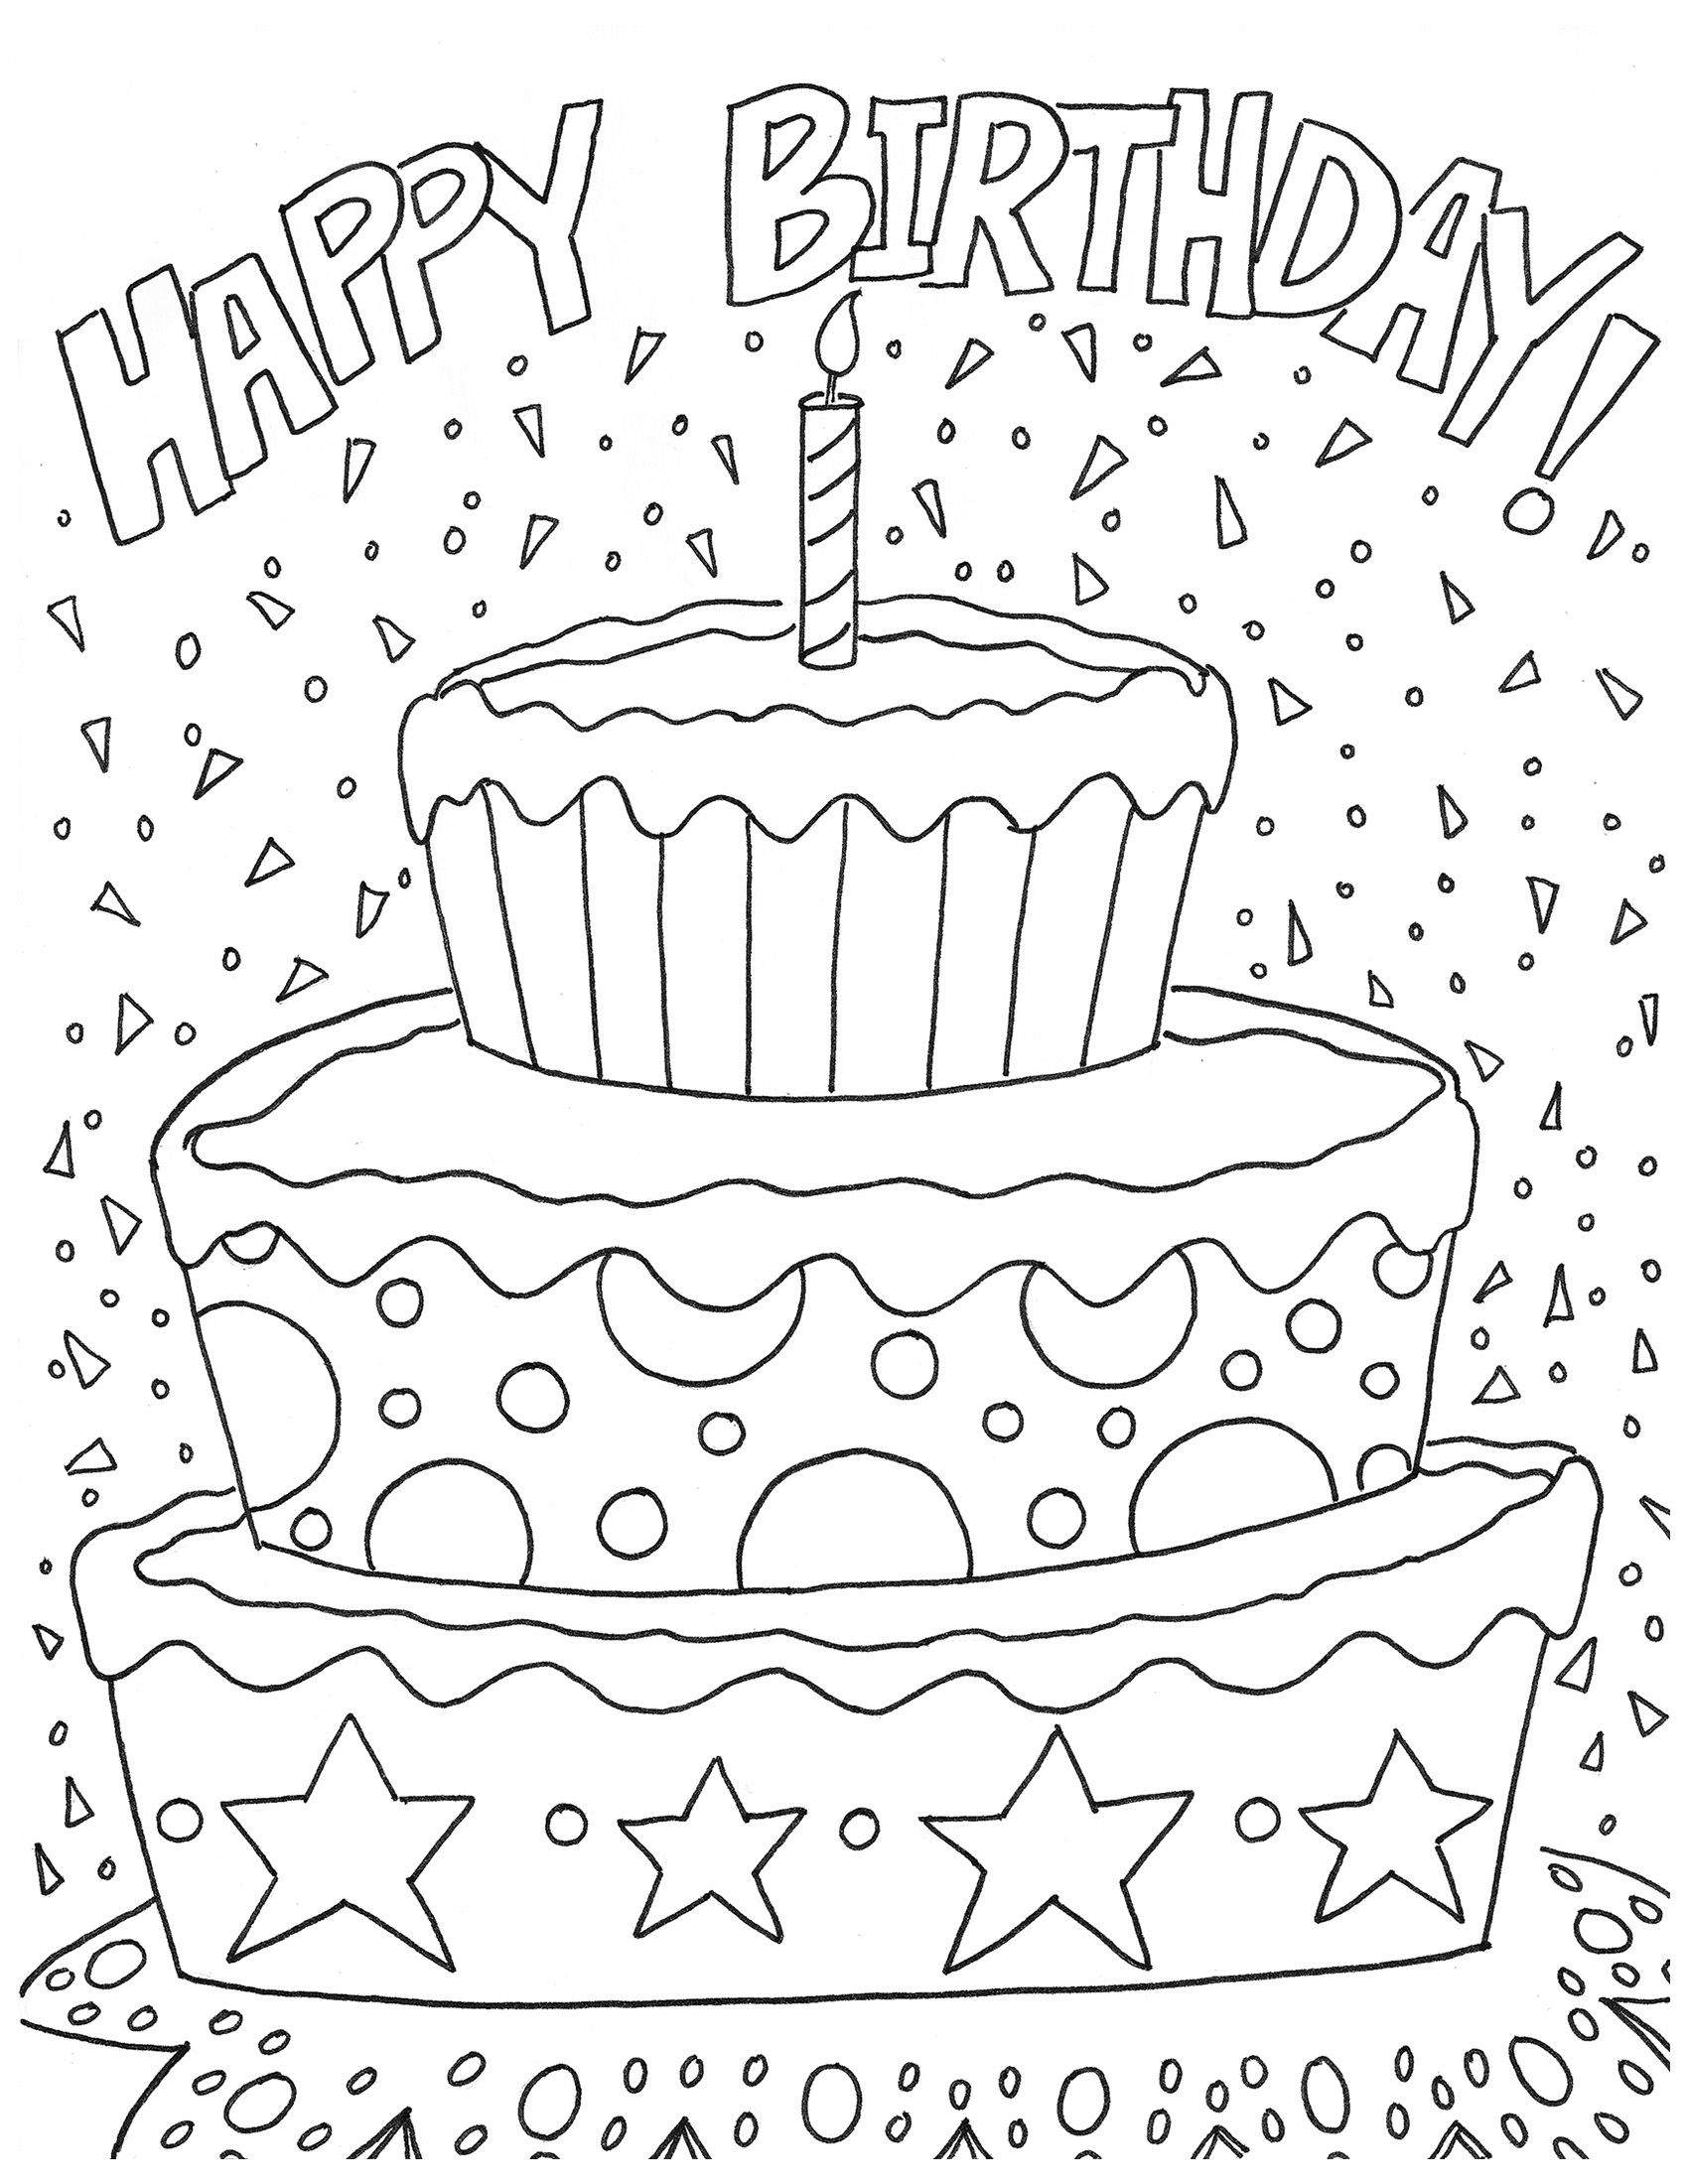 Happy Birthday Coloring Pages For Friends Free Happy Birthday Coloring Page And Hershey Artzycreations